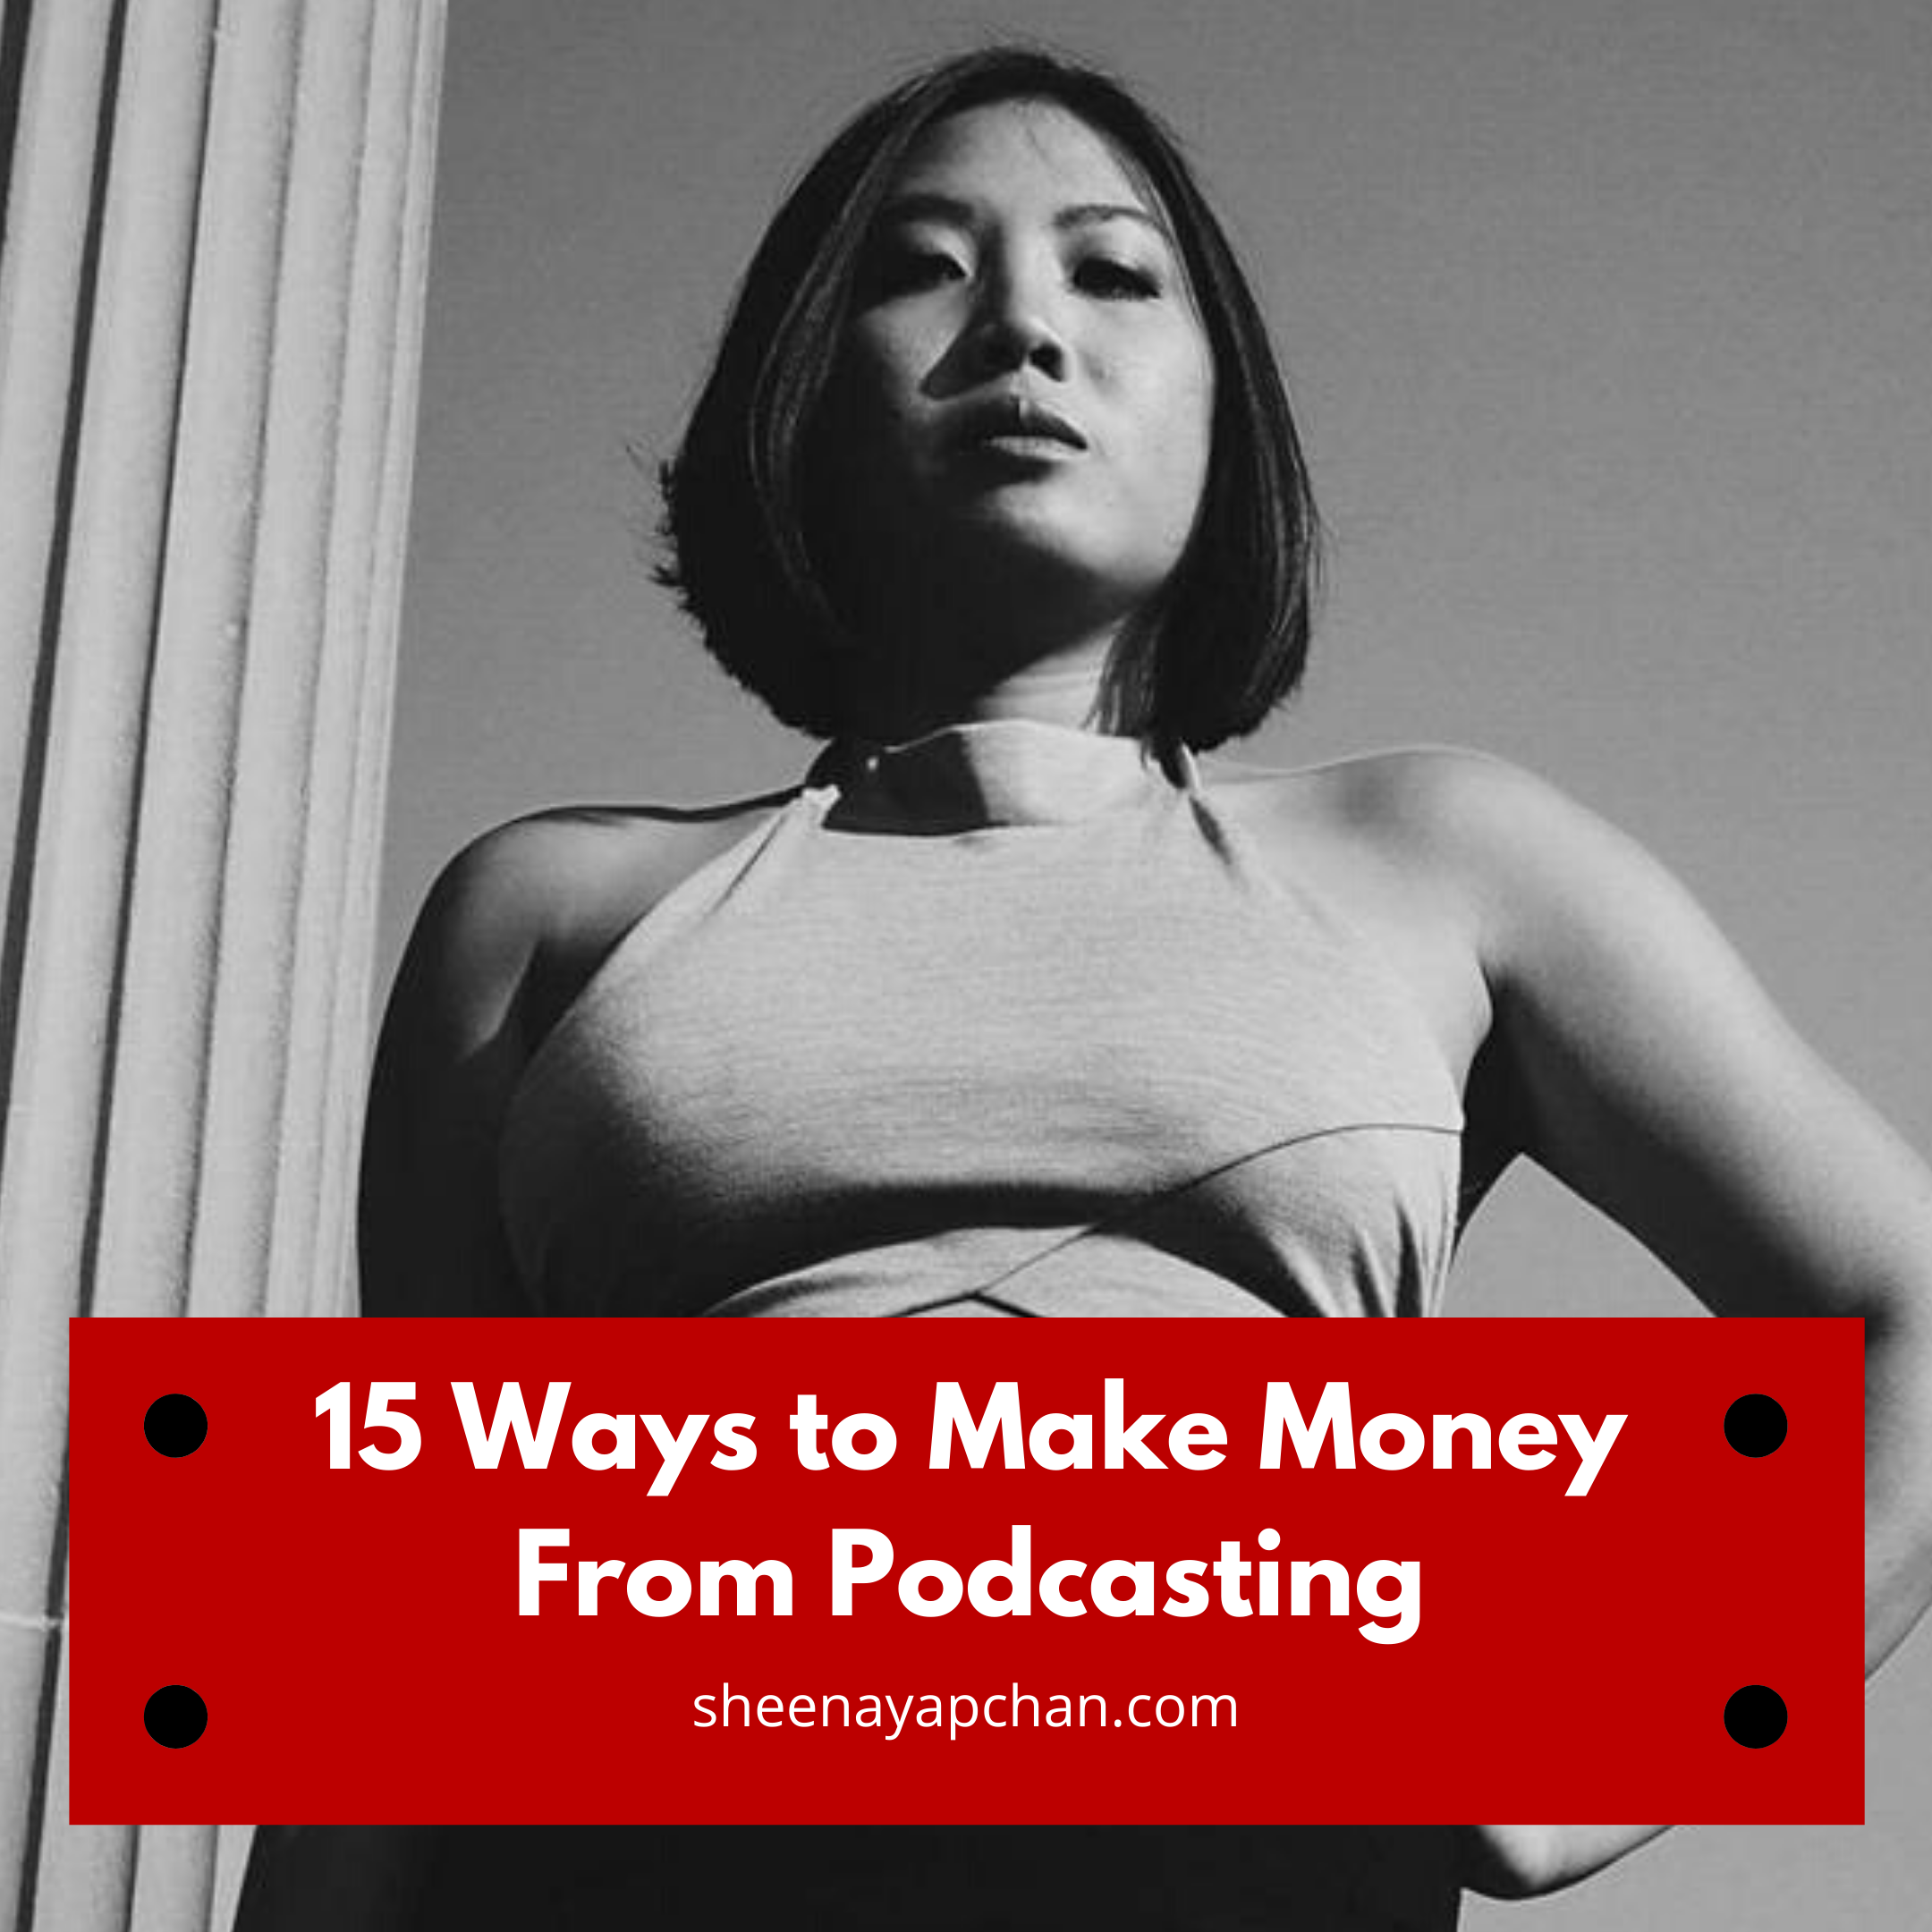 15 Ways to Make Money From Podcasting